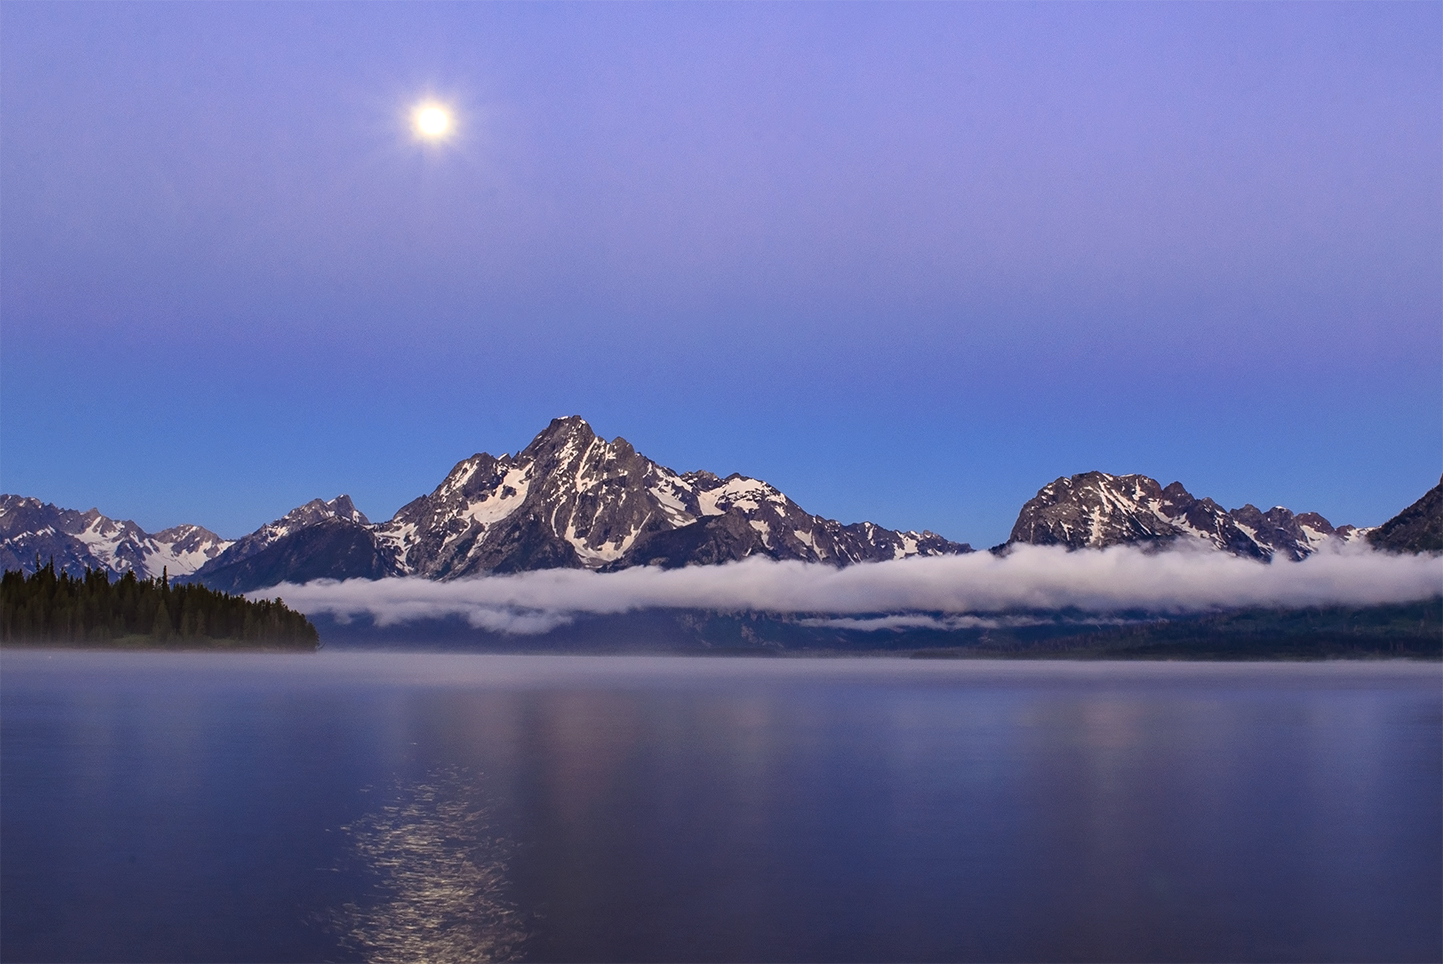 Moonset over Grand Teton